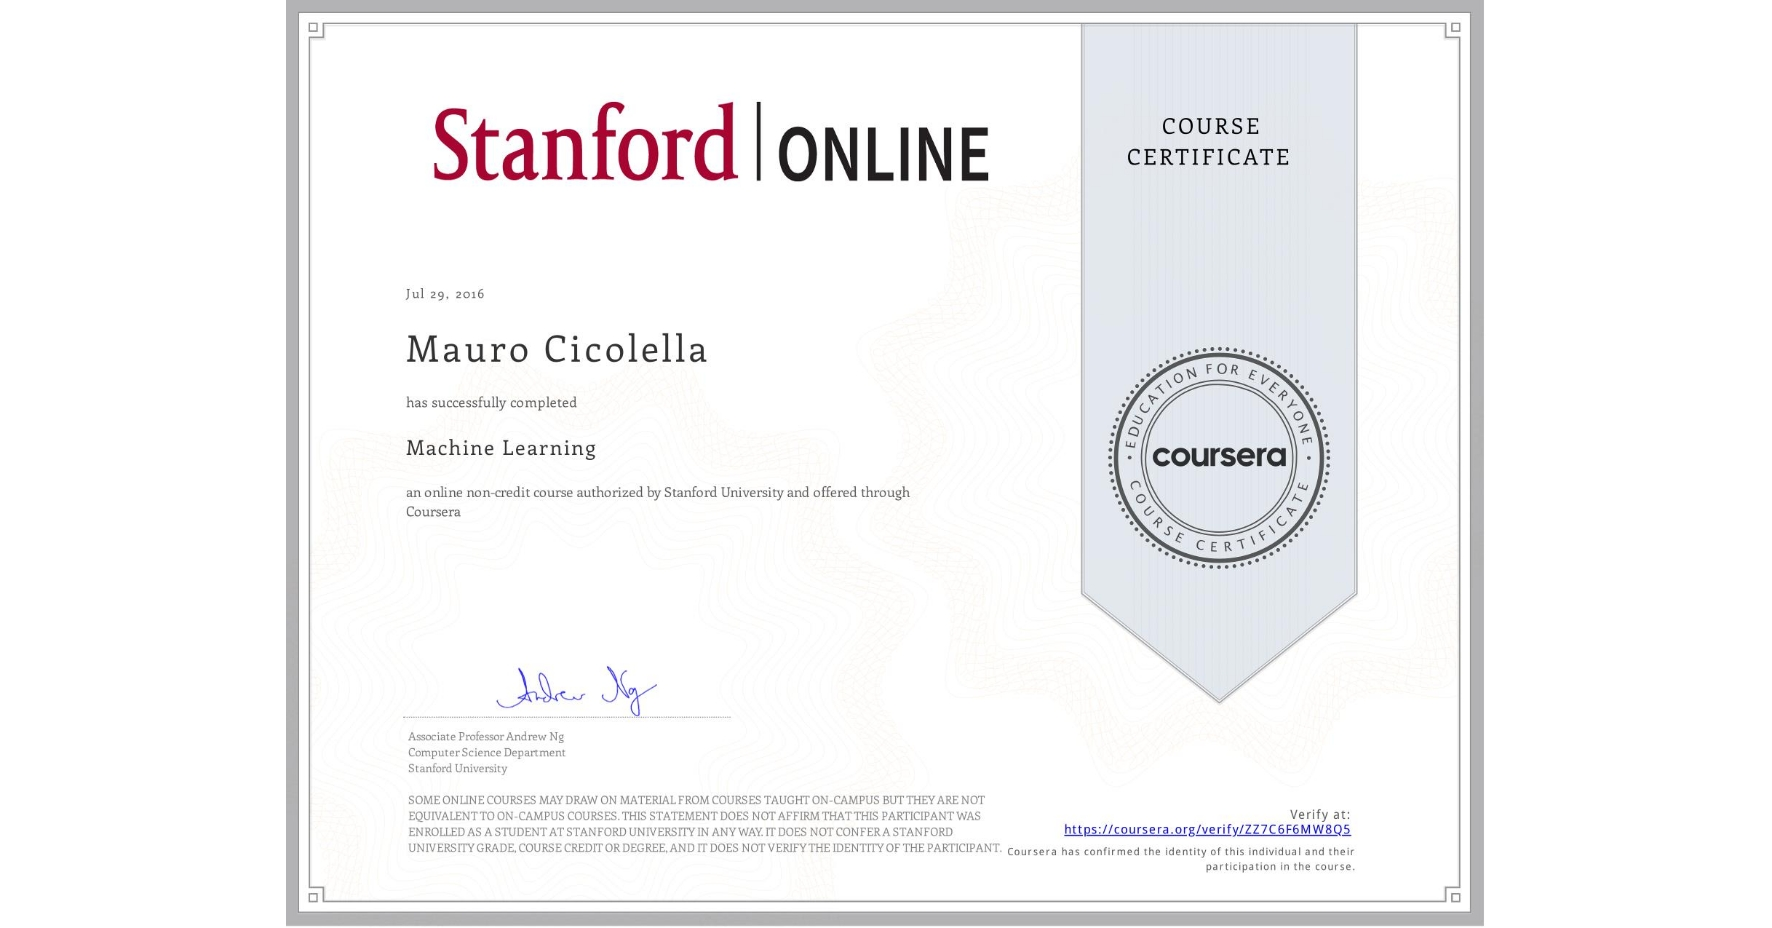 View certificate for Mauro Cicolella, Machine Learning, an online non-credit course authorized by Stanford University and offered through Coursera